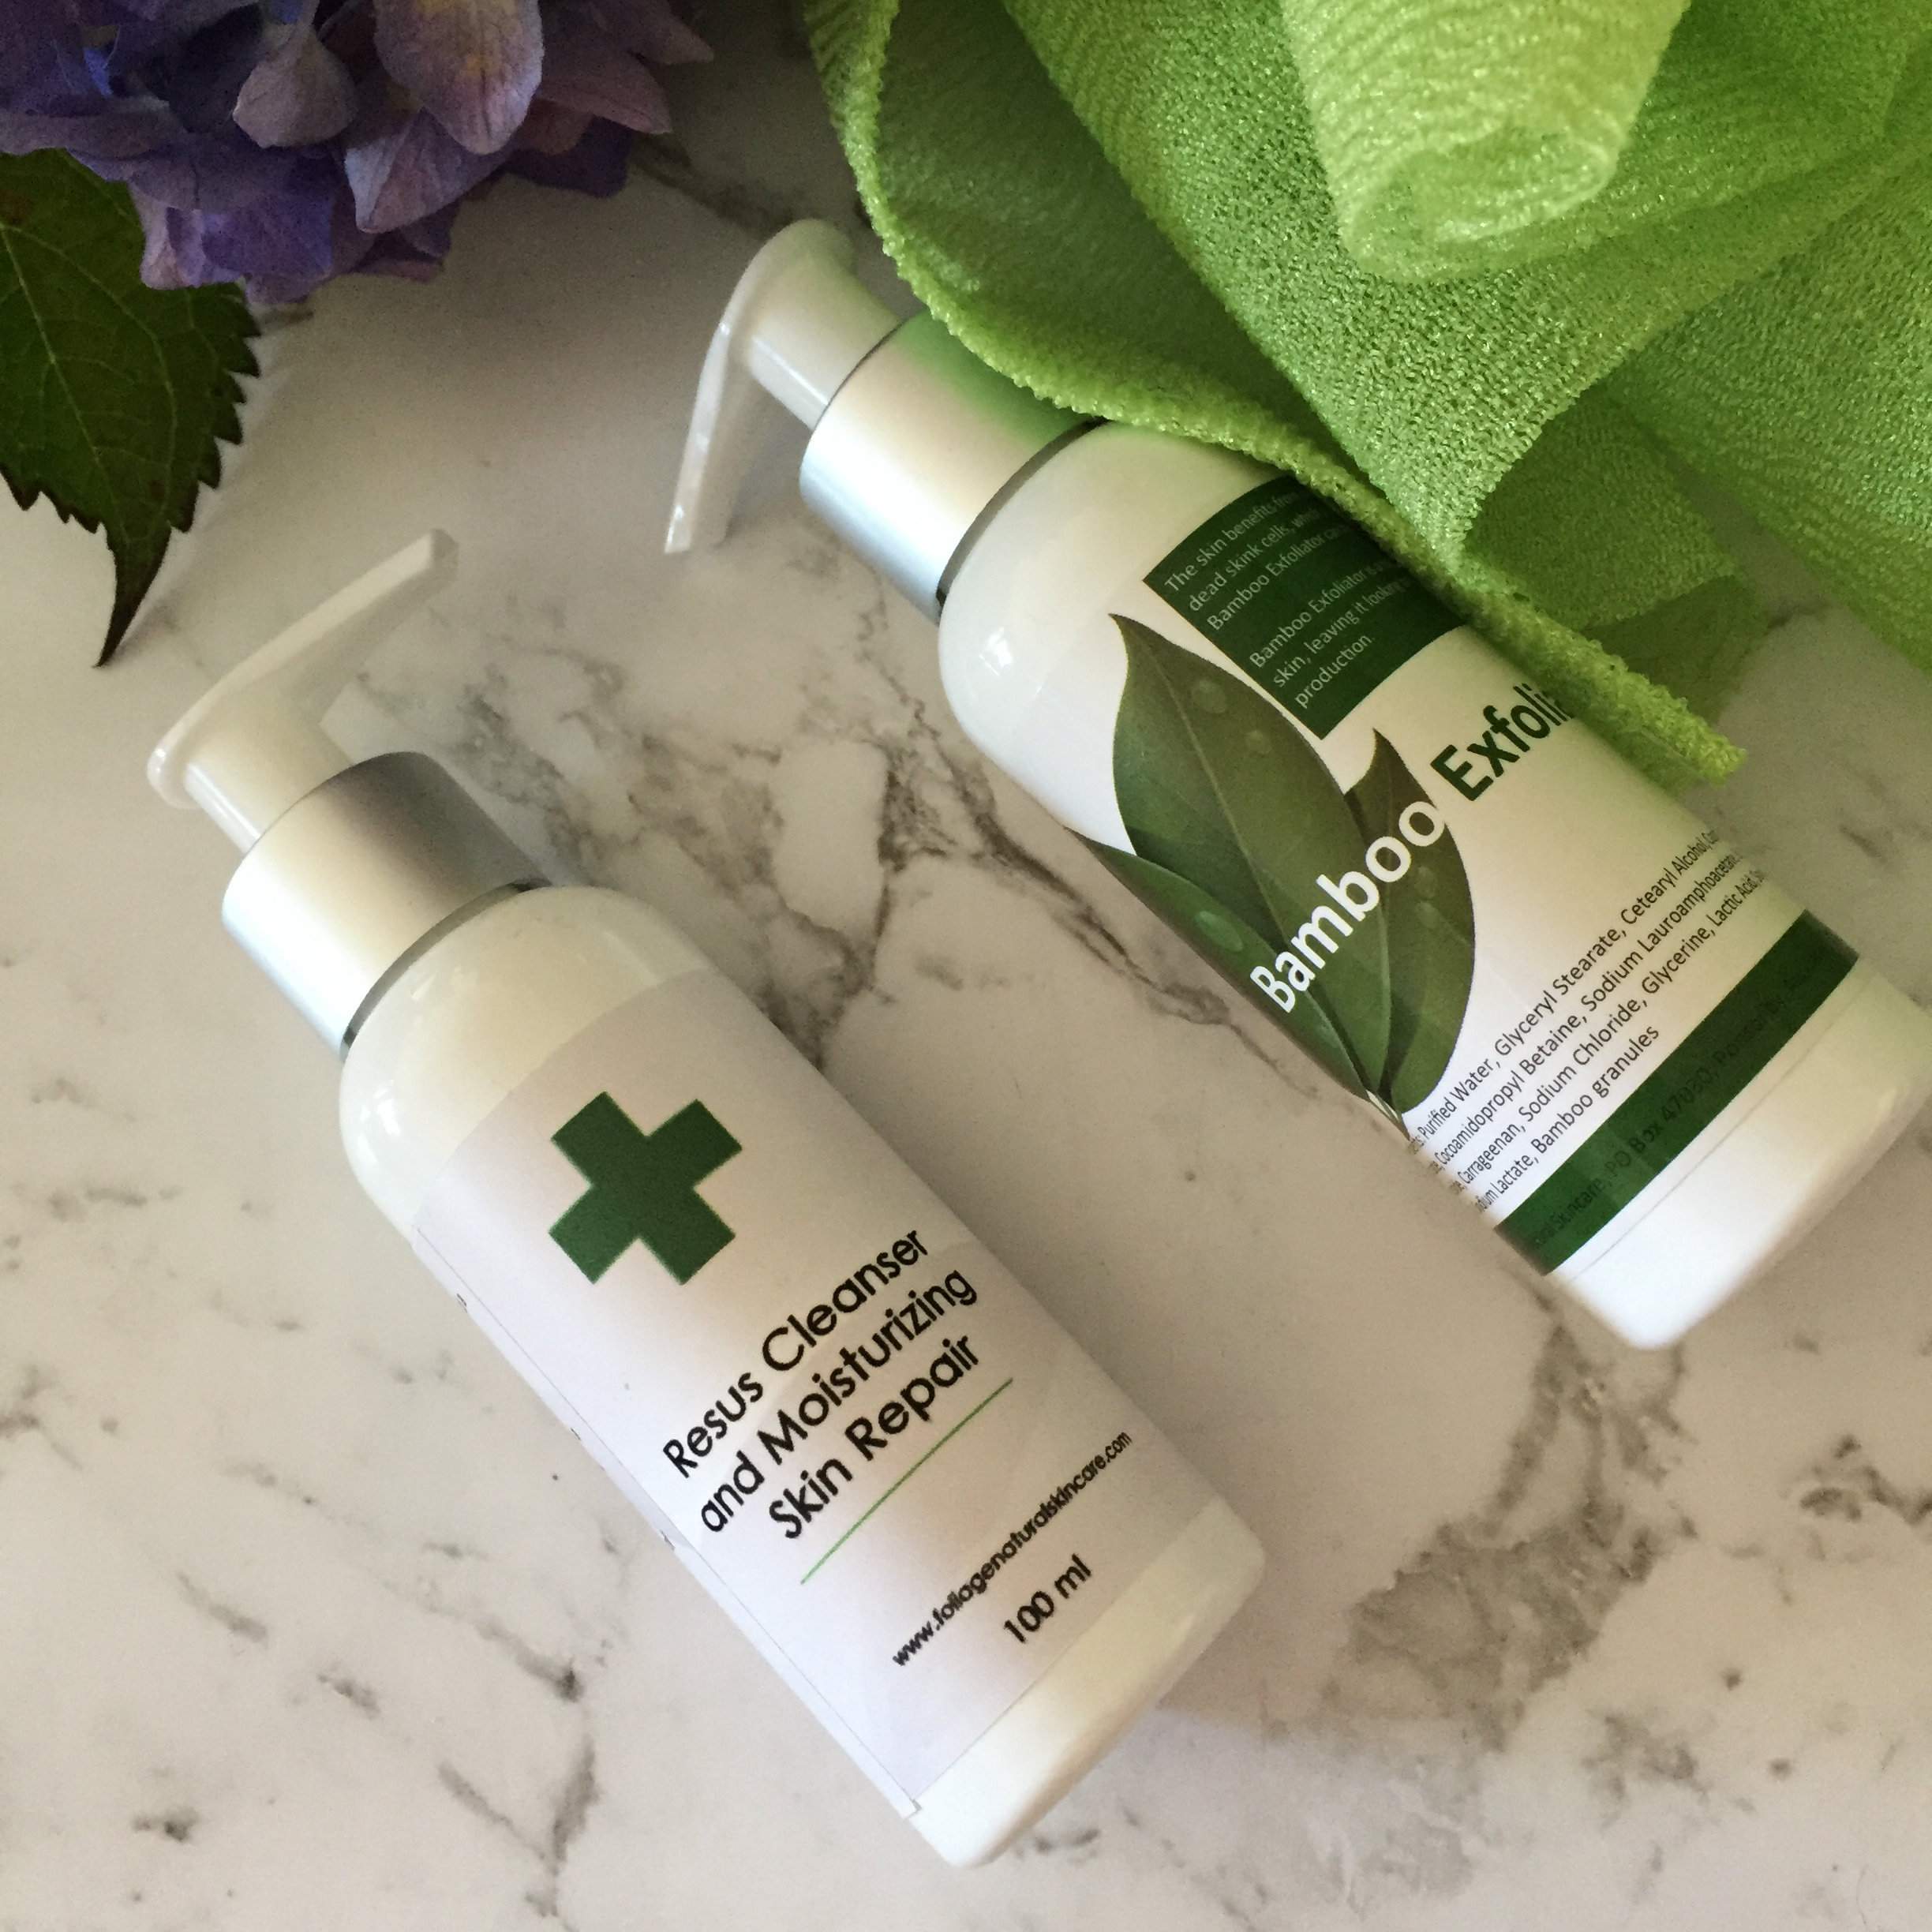 Bamboo exfoliator and Resus